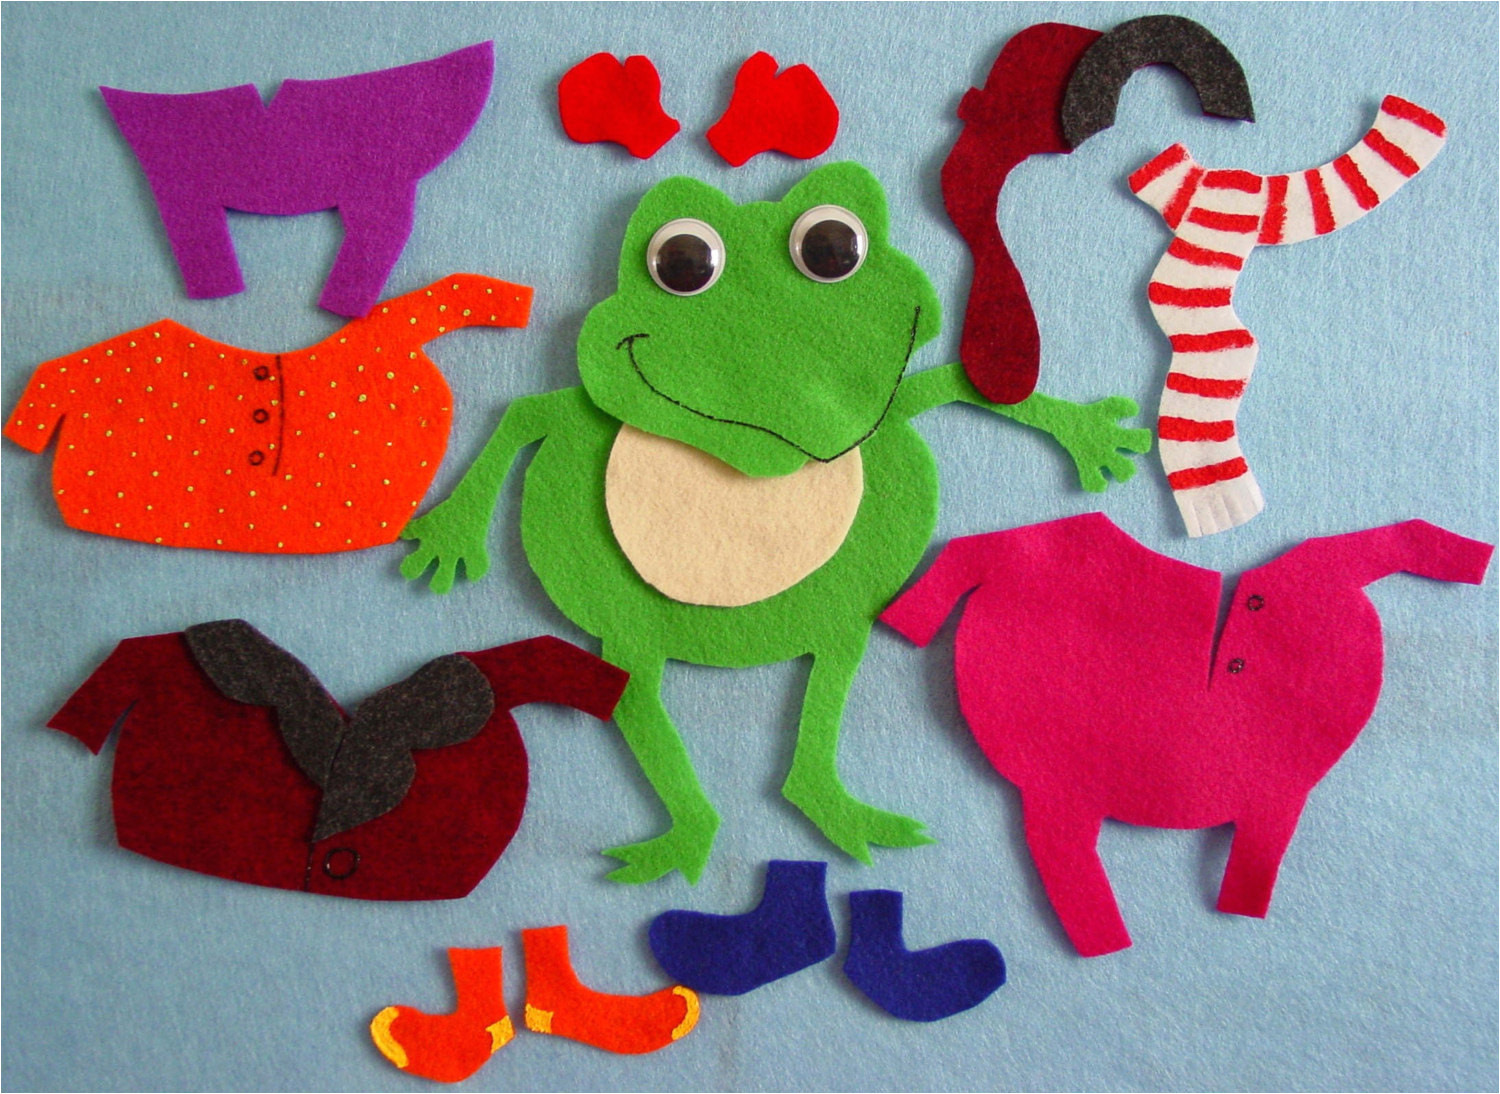 Froggy Gets Dressed Template Froggy Gets Dressed 13 Pc Flannel Board Felt Story